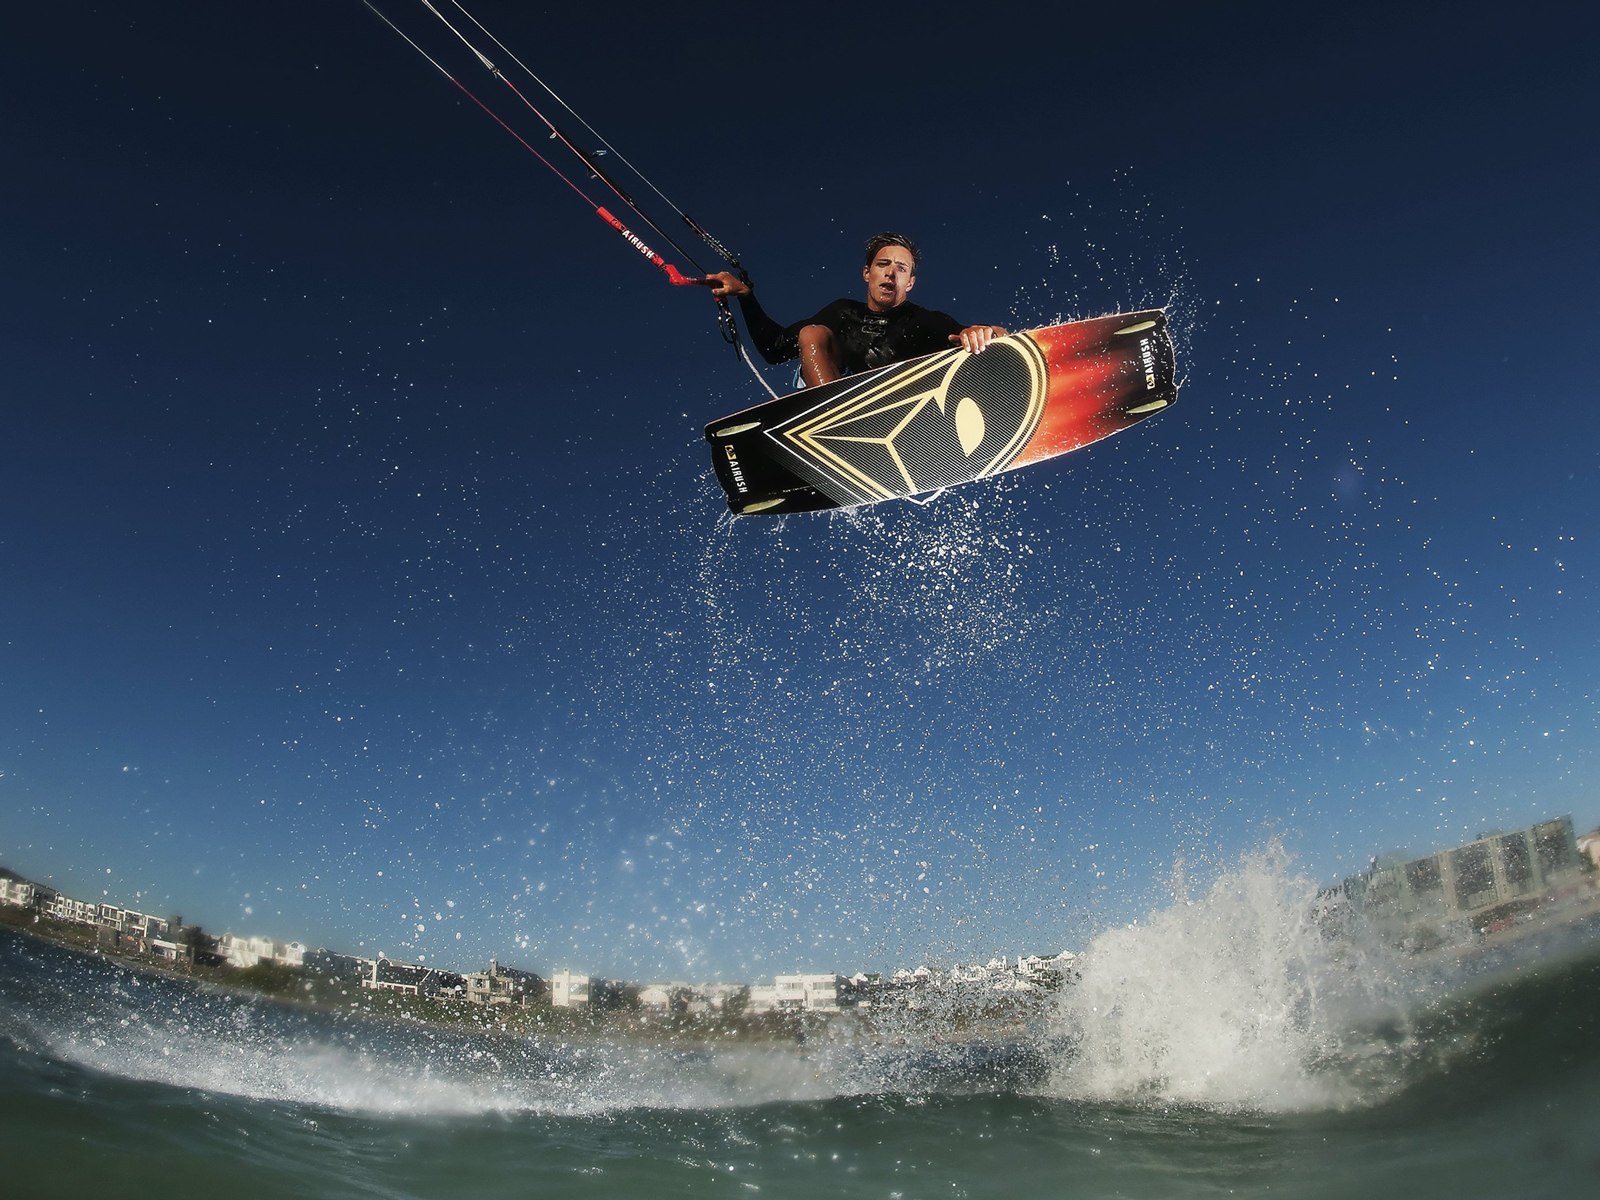 kitesurf wallpaper image - Oswald Smith with a nice Indie Grab at twilight - in resolution: Standard 4:3 1600 X 1200